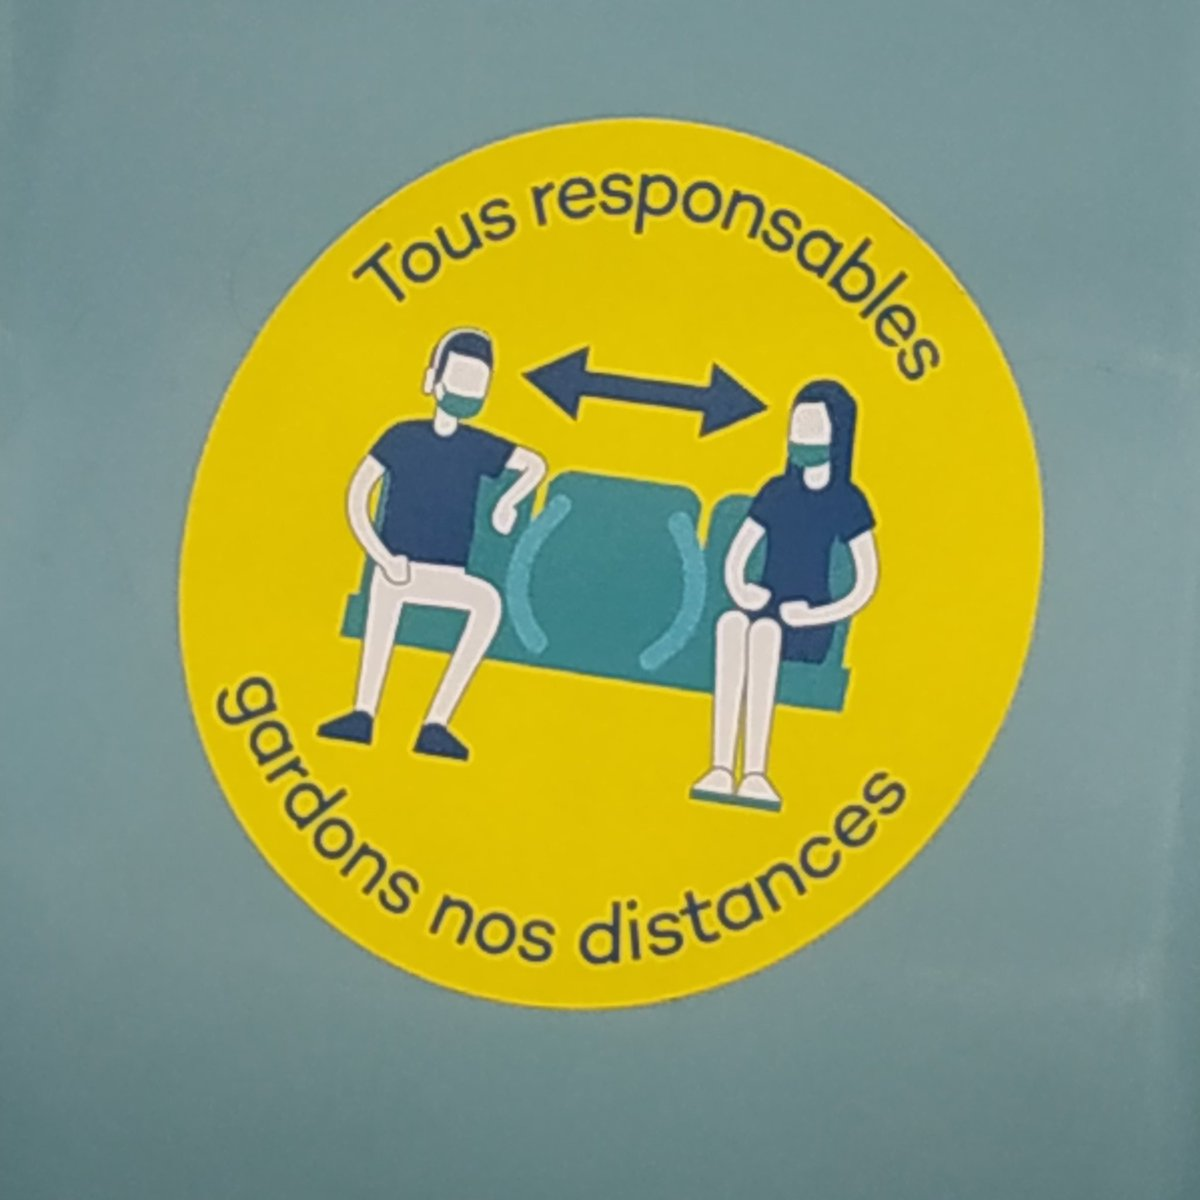 #manspreading even in the #Subway #signs #France #lille #COVID19 https://t.co/eQ0UQwGXJX